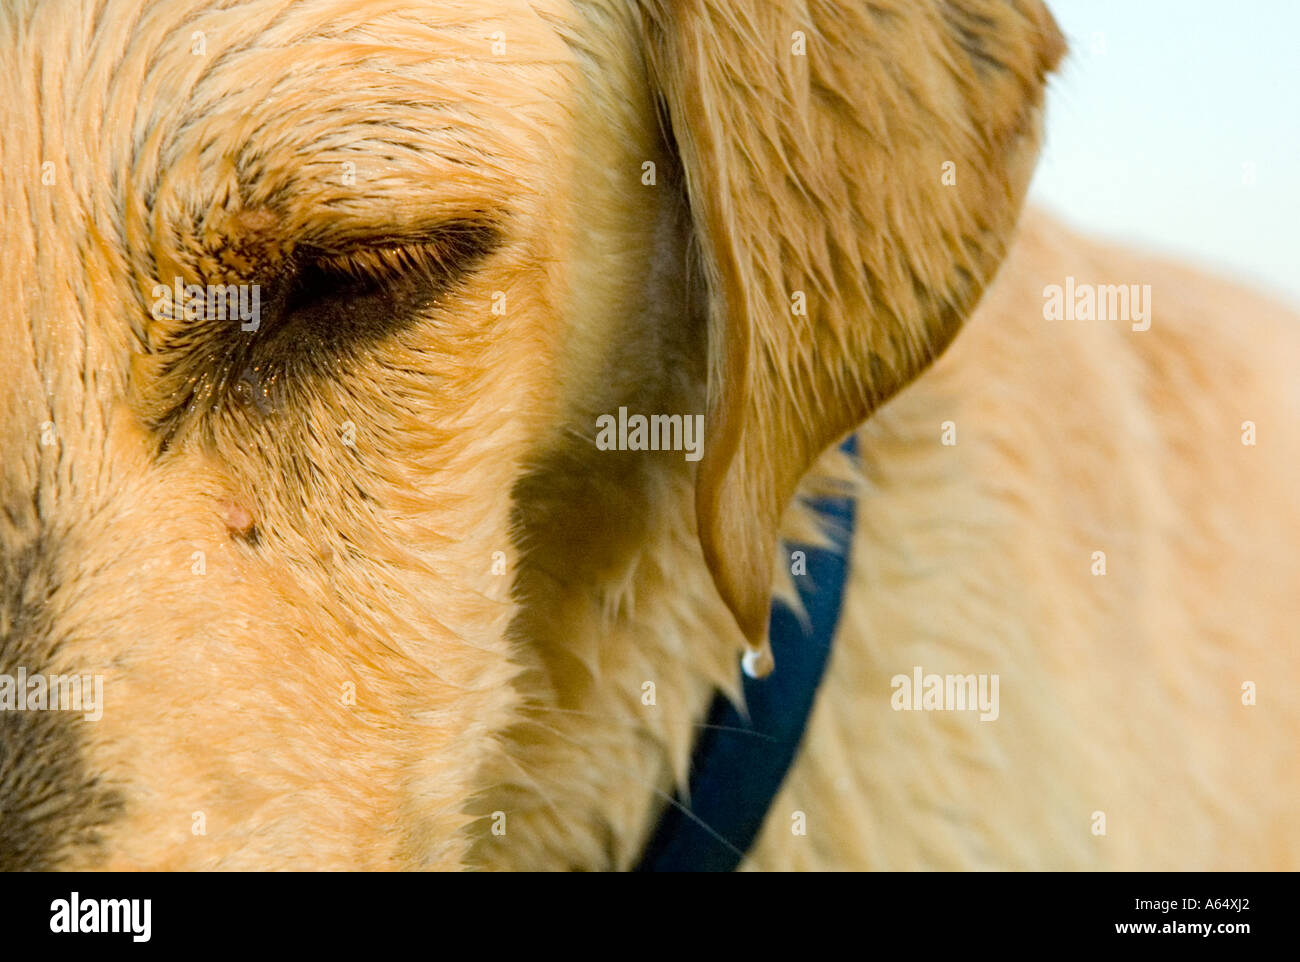 Close-up of yellow lab contemplating whether his fetch toy is soon to be thrown. - Stock Image